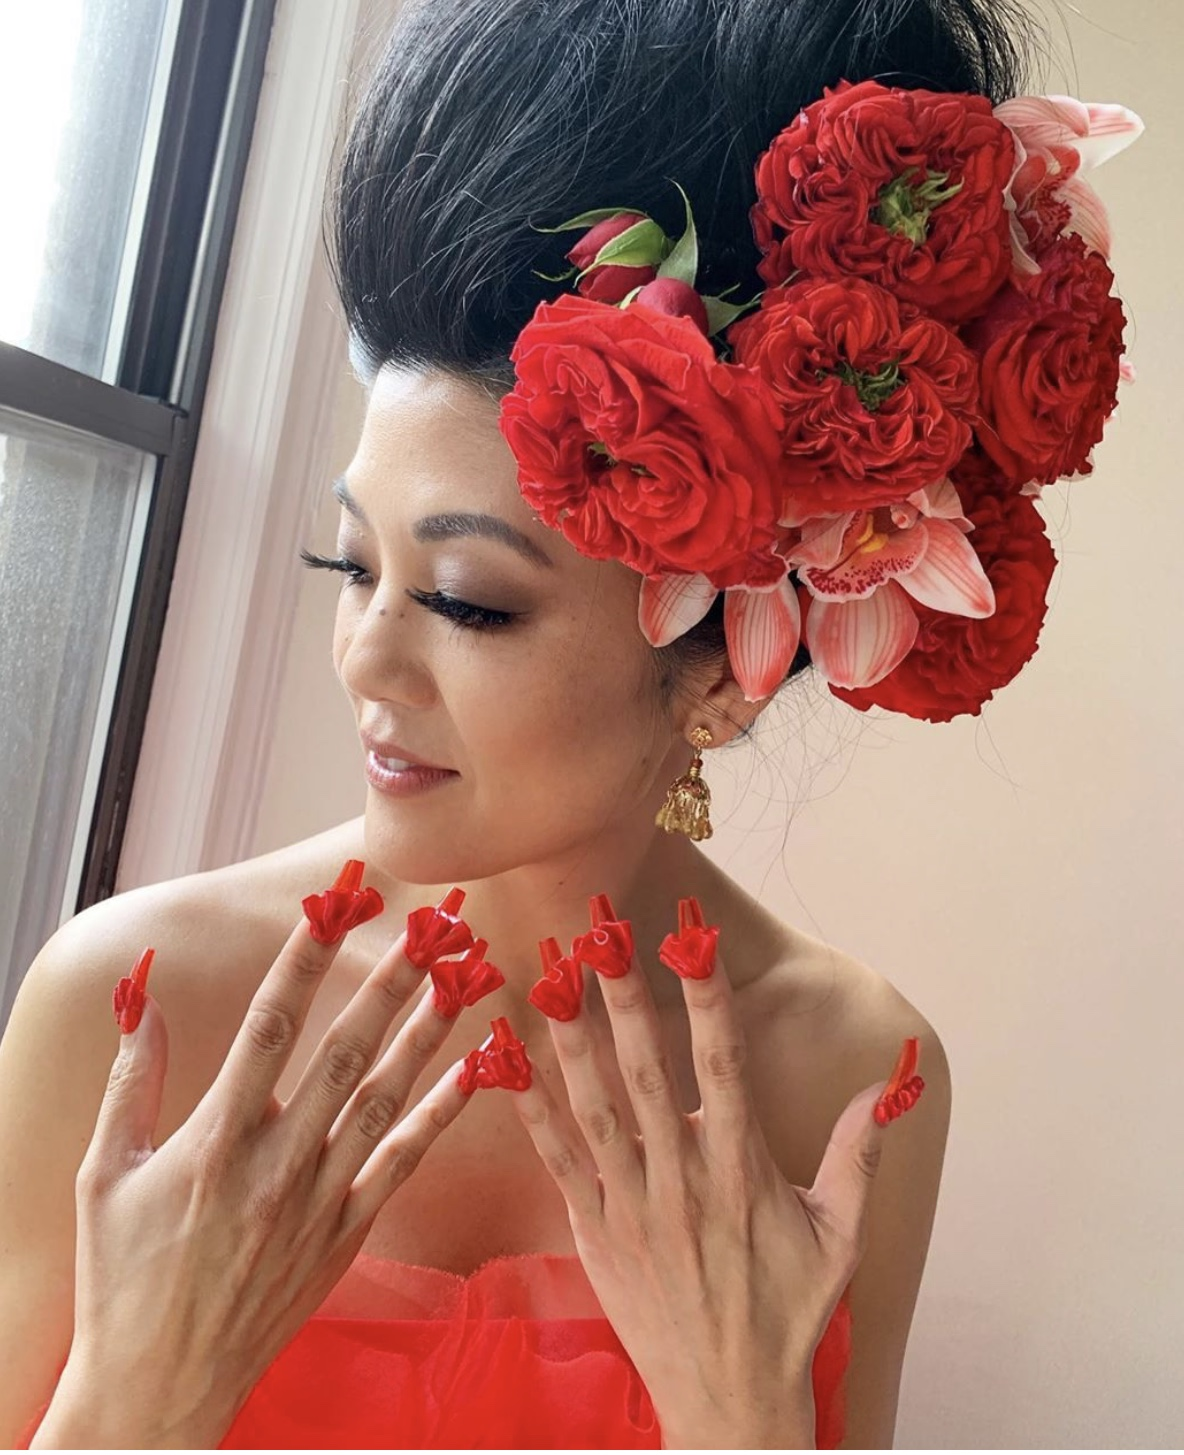 Michelle Lee, editor-in-chief of Allure magazine, showing of her nails by @misspopnails. Image:  @heymichelle